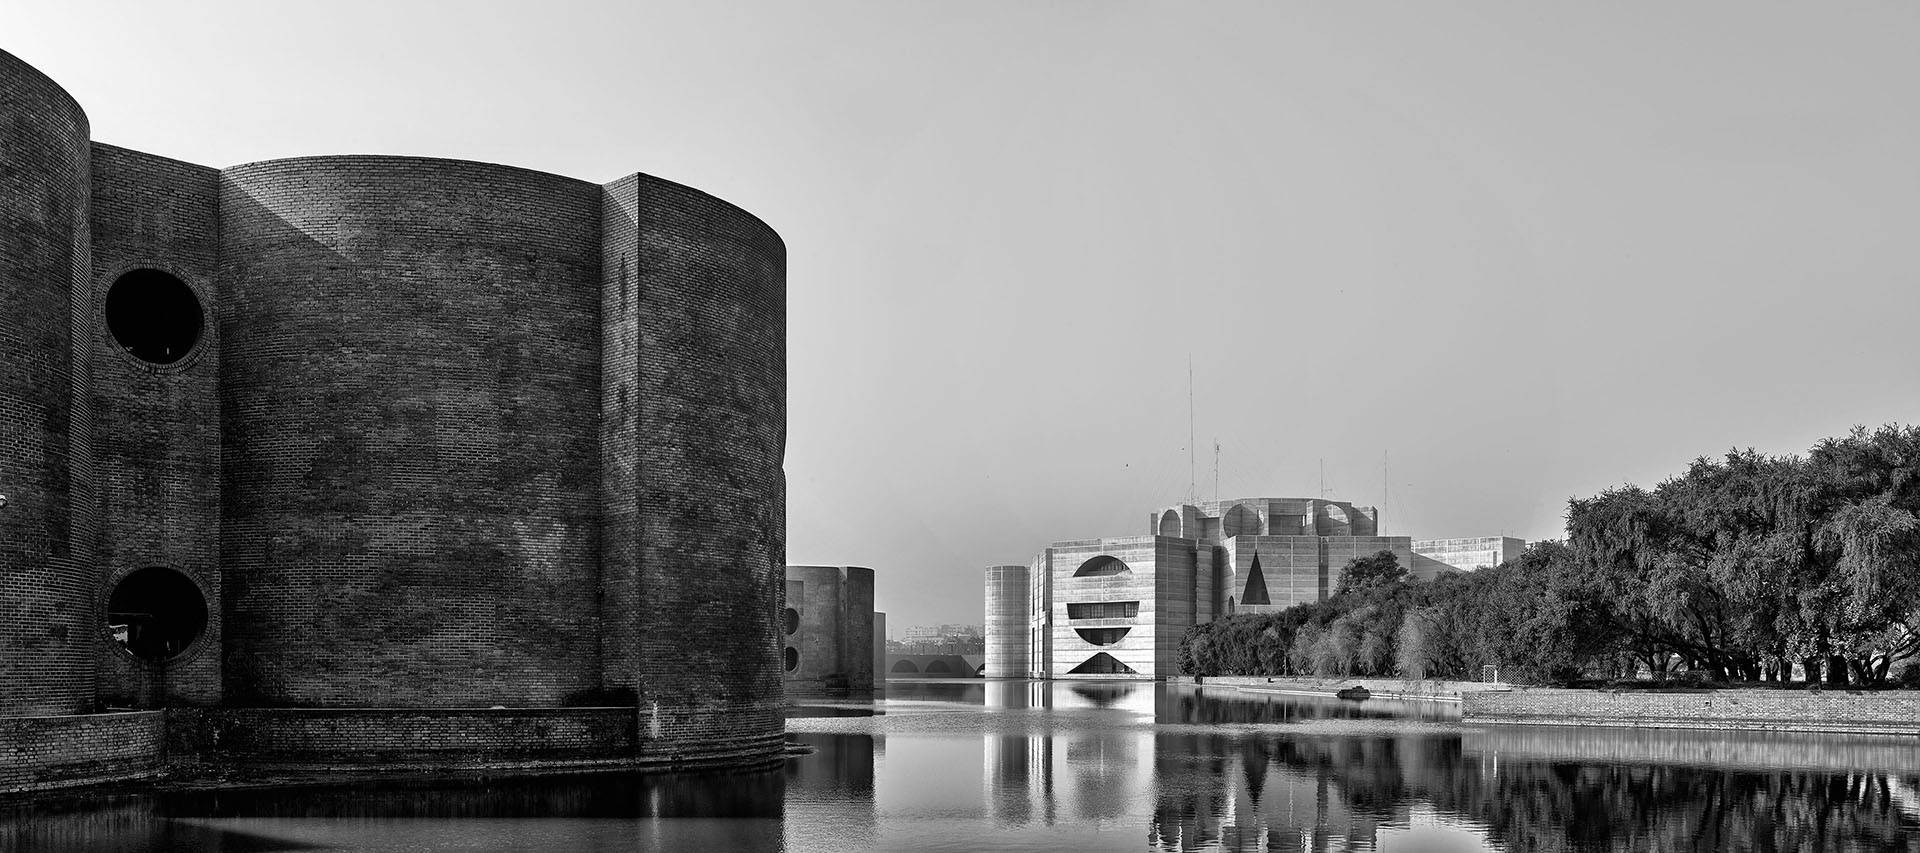 The National Parliament of Bangladesh in Dhaka, Bangladesh (1962-83) | Miracles in Concrete | Louis I Kahn | STIRworld